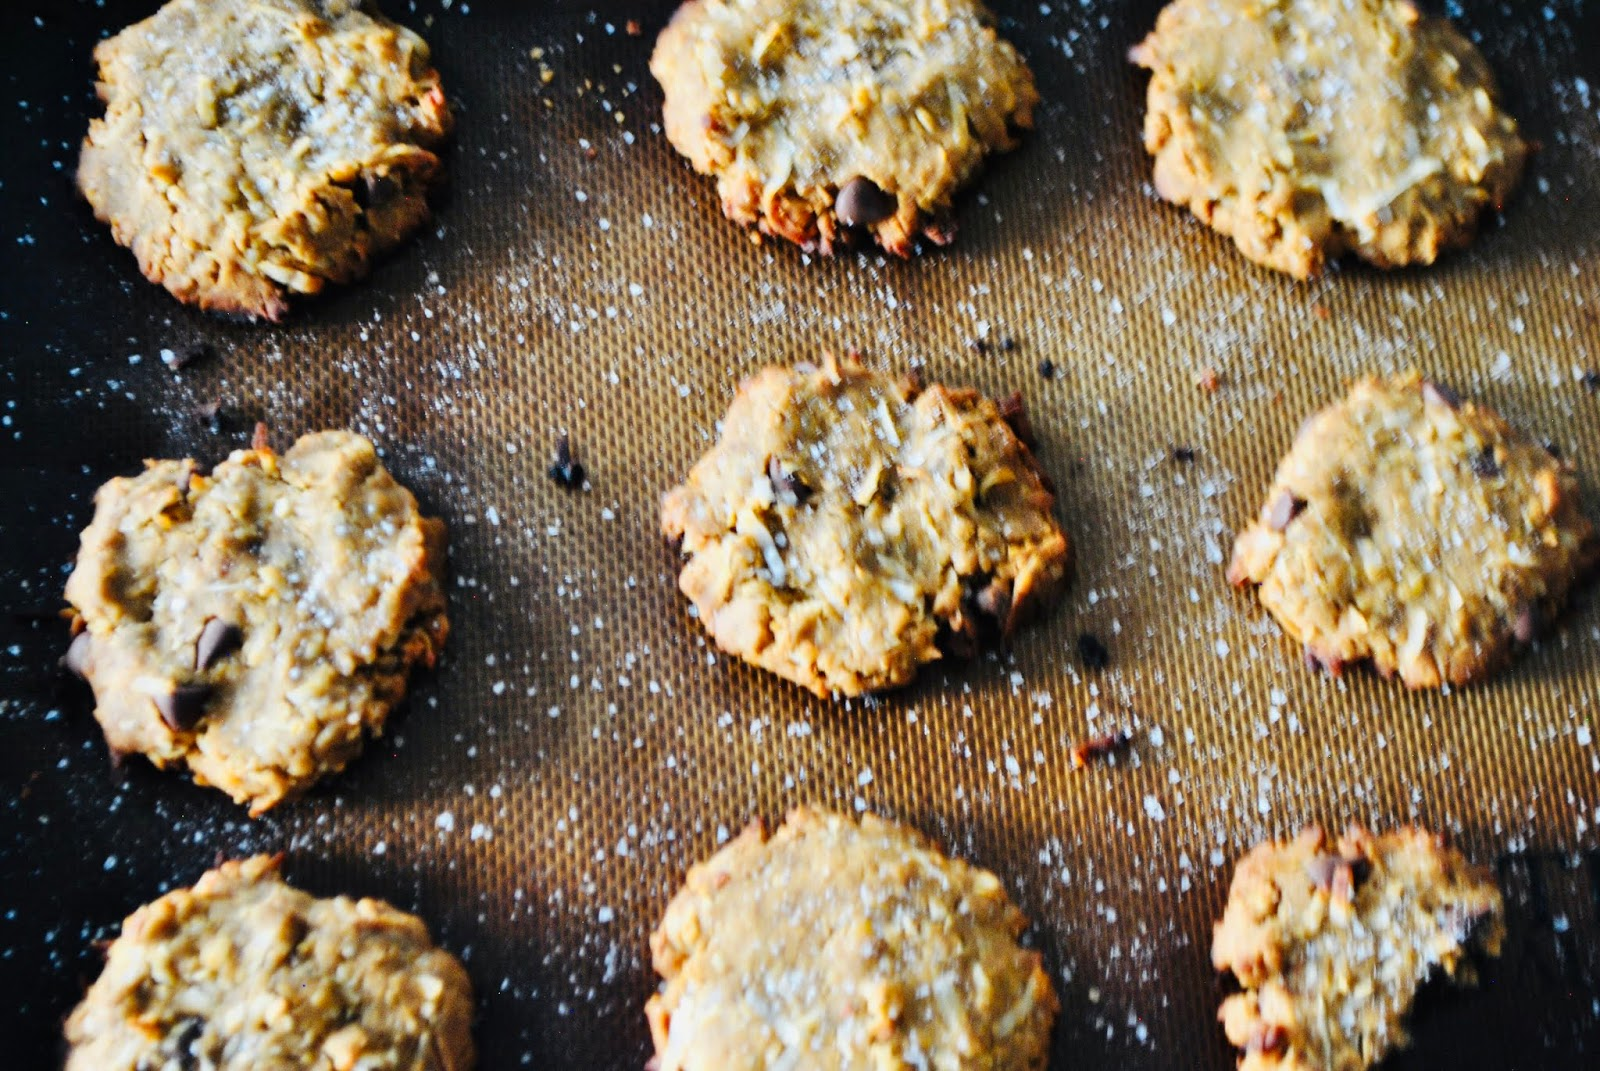 A healthy cookie alternative with toasted coconut and chocolate chips, gluten free dairy free